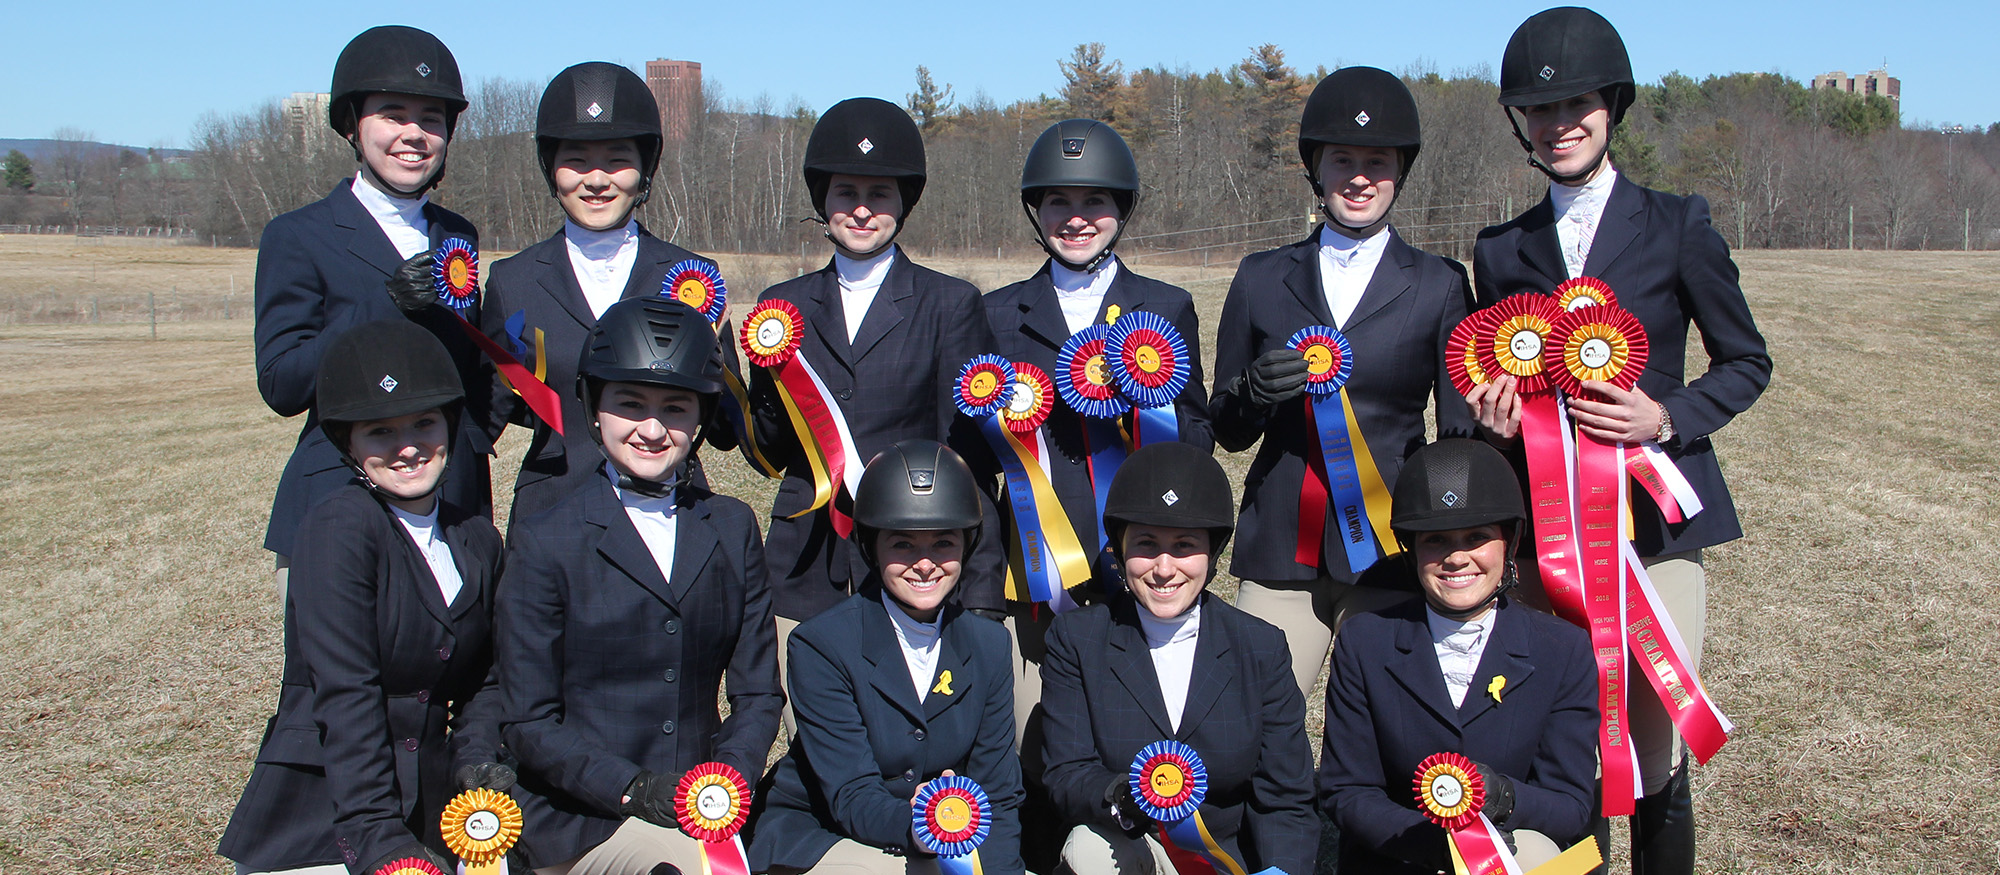 Group photo of the Lyons riding team following competition at the Regional Championships